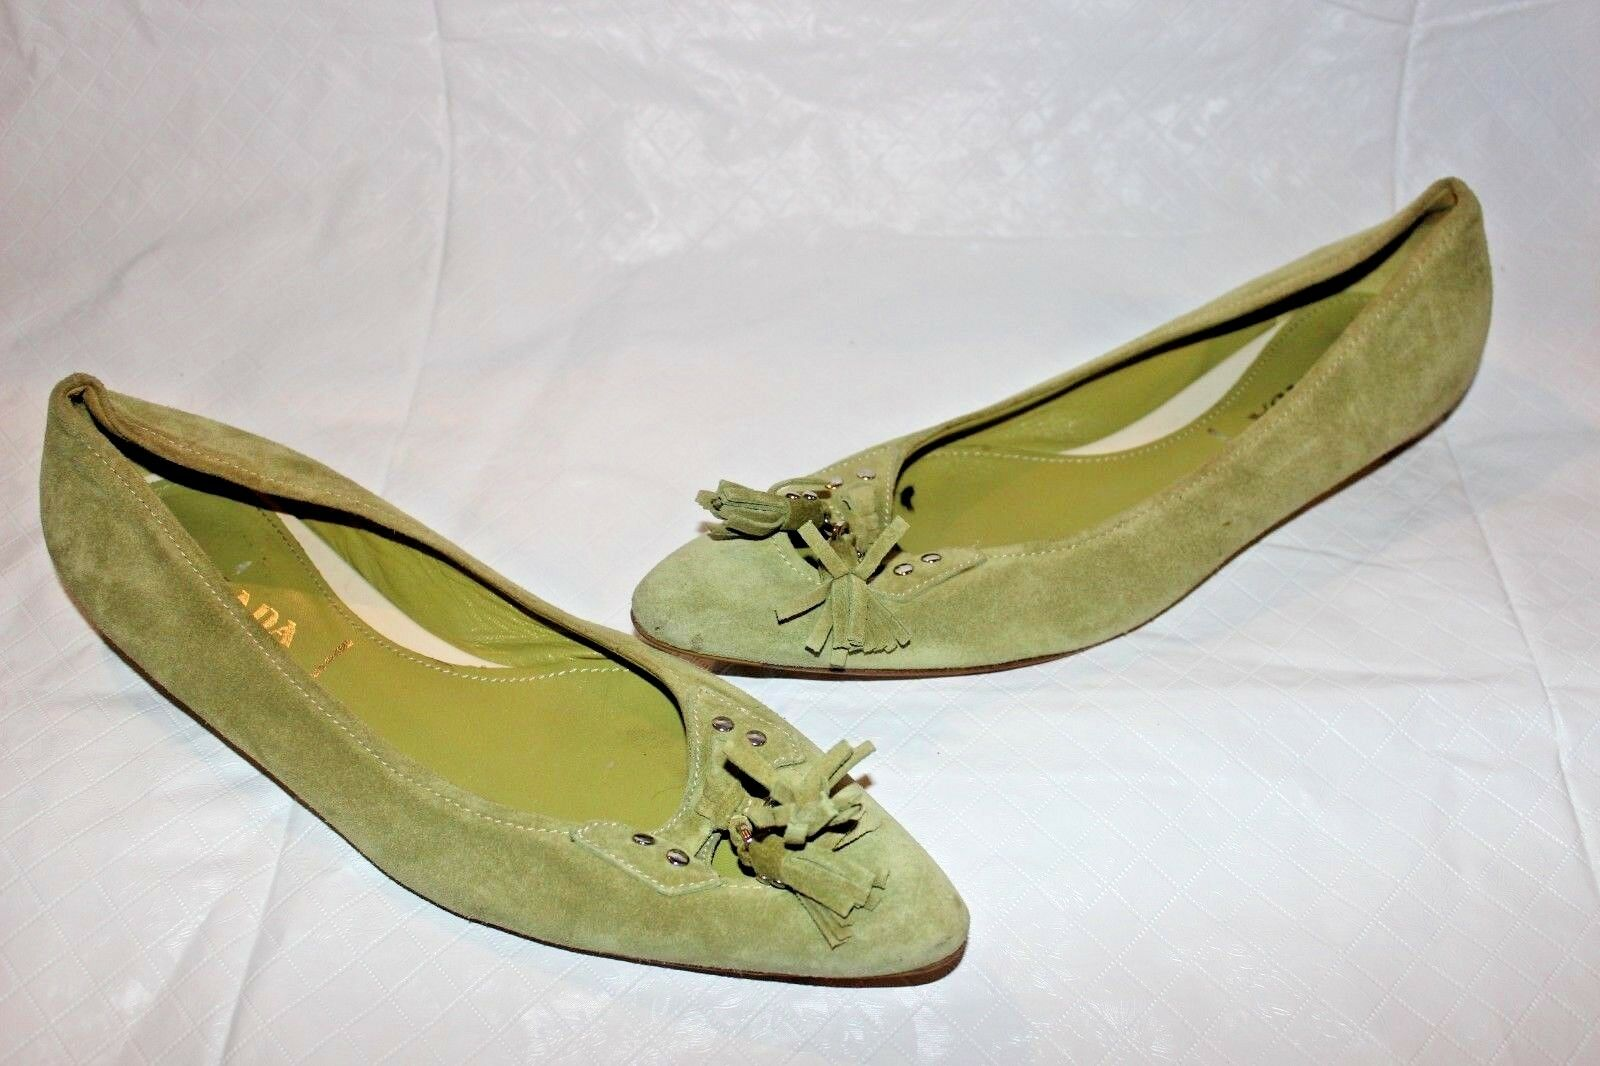 AUTH Green Prada Suede Pelle Tassel Pointed Pointed Pointed Toe Flats Sz 39.5  670 1610d5